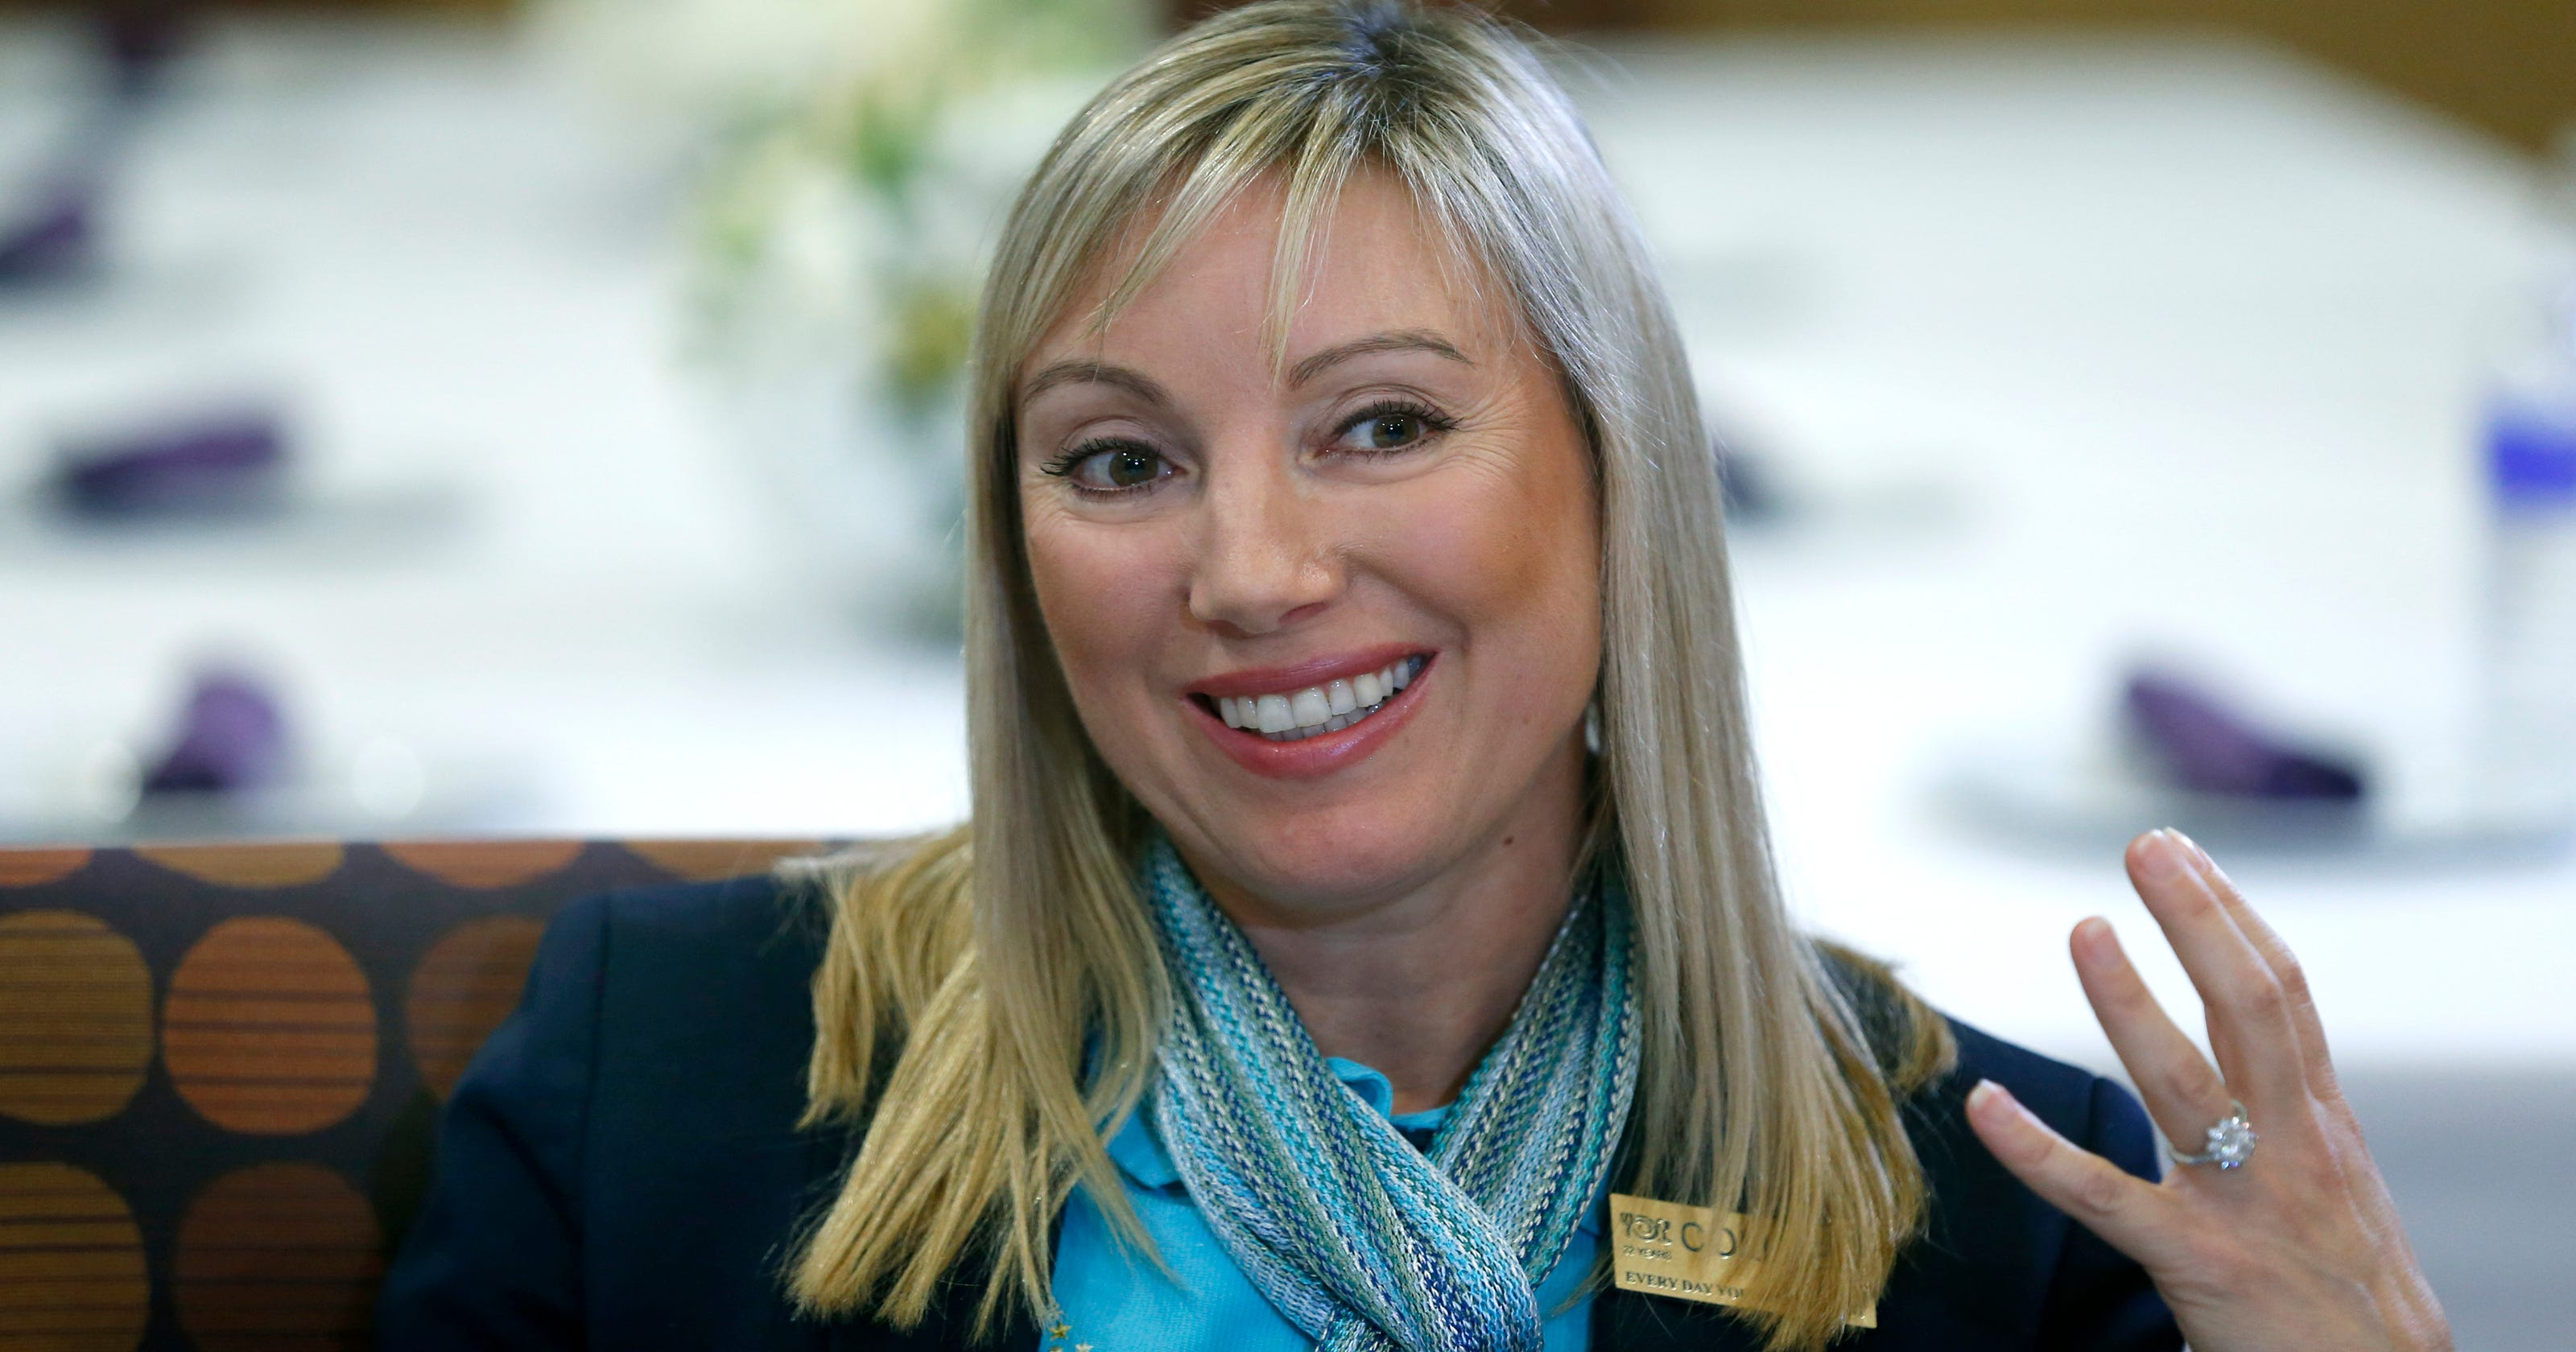 colleen wegman named president ceo of wegmans